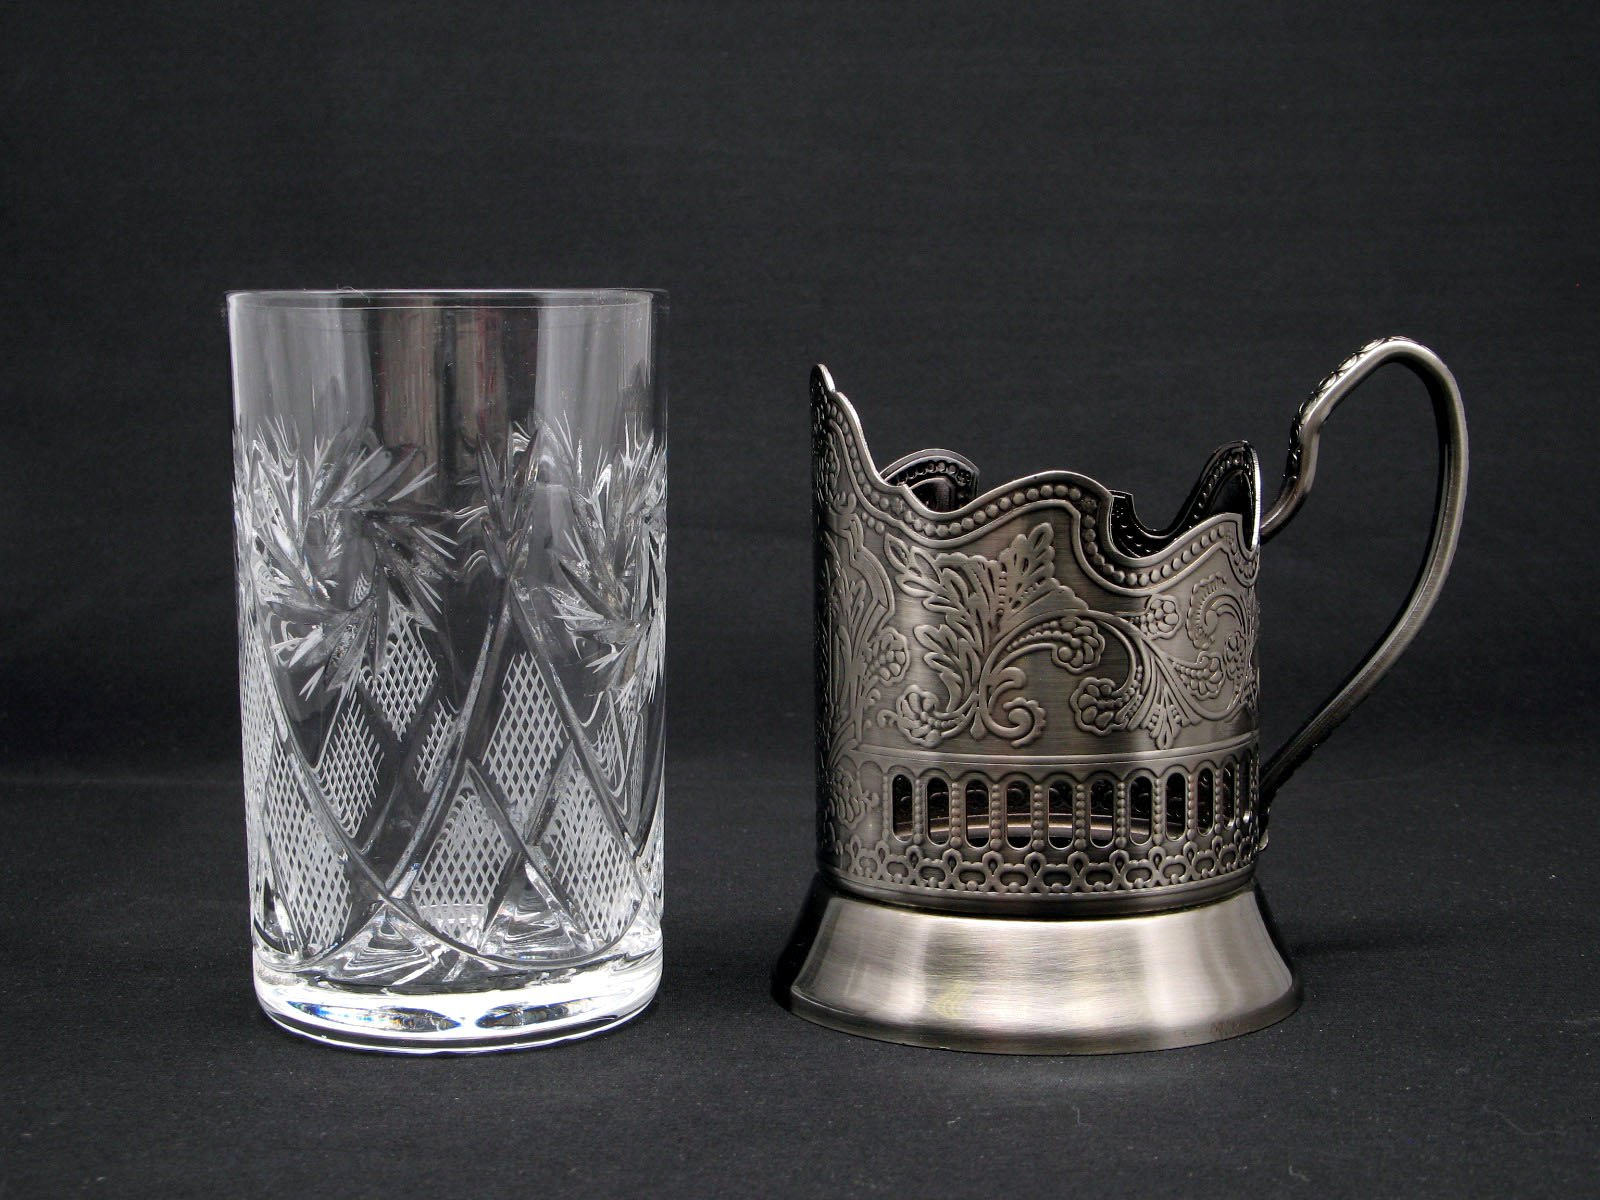 Combination 6 Russian CUT Crystal Drinking Tea Glasses W/metal Glass Holders ''Podstakannik'' for Hot or Cold Liquids by Belarus (Image #4)